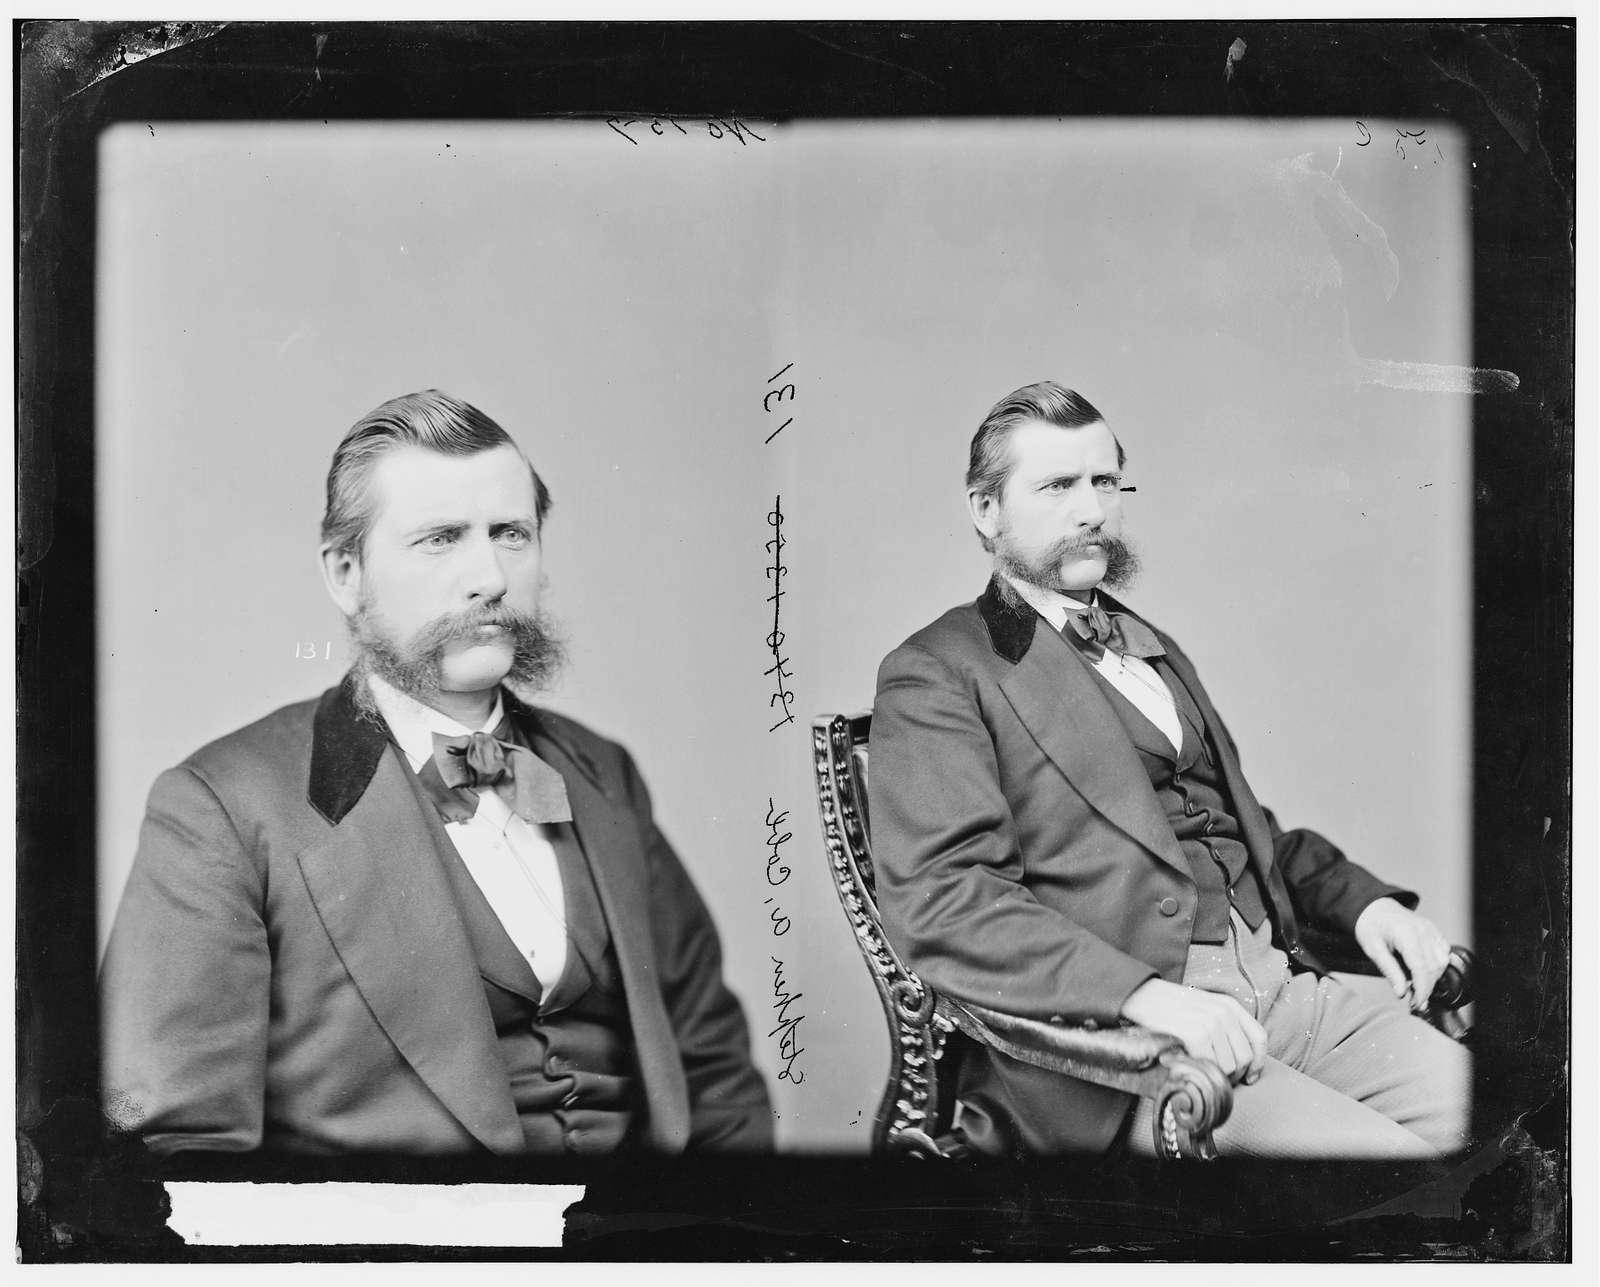 Cobb, Hon. Stephen Alonzo of Kansas, Capt. and Commissary Sergeant of Volunteers on May 18, 1864